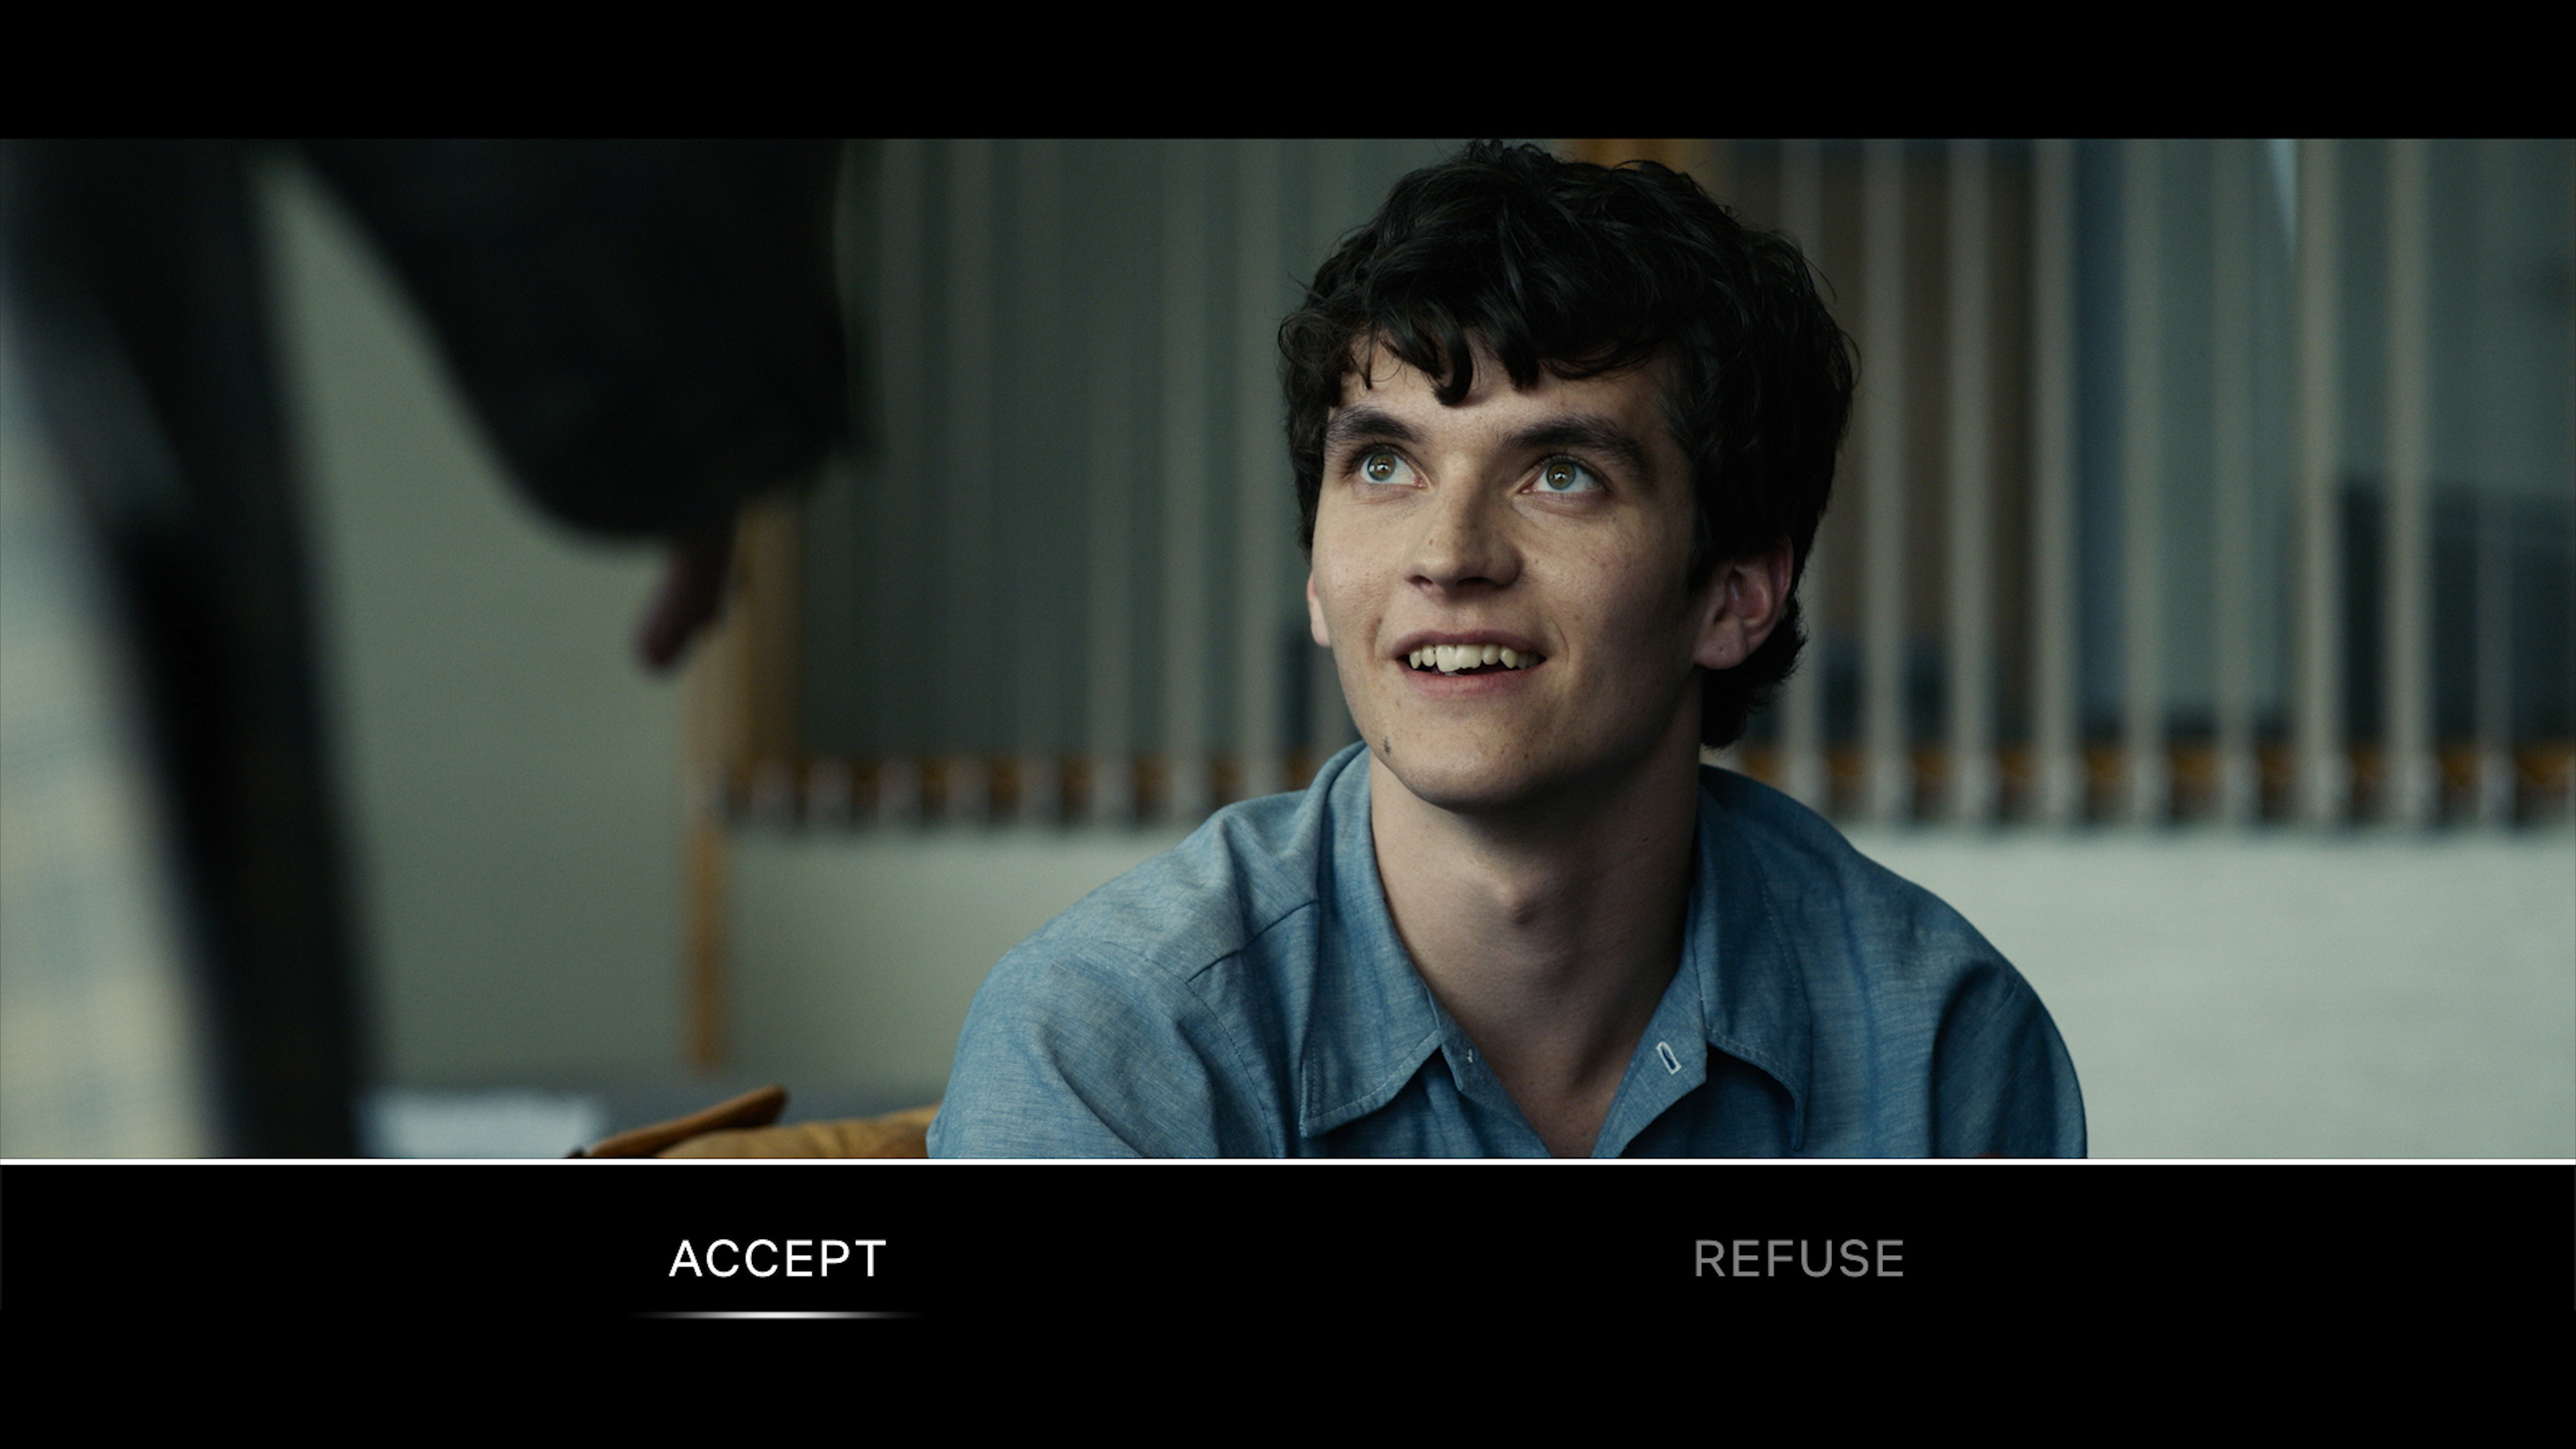 'Black Mirror' Creator Opens Up on That 'Bandersnatch' Netflix Twist Ending, and Pitching It to Netflix